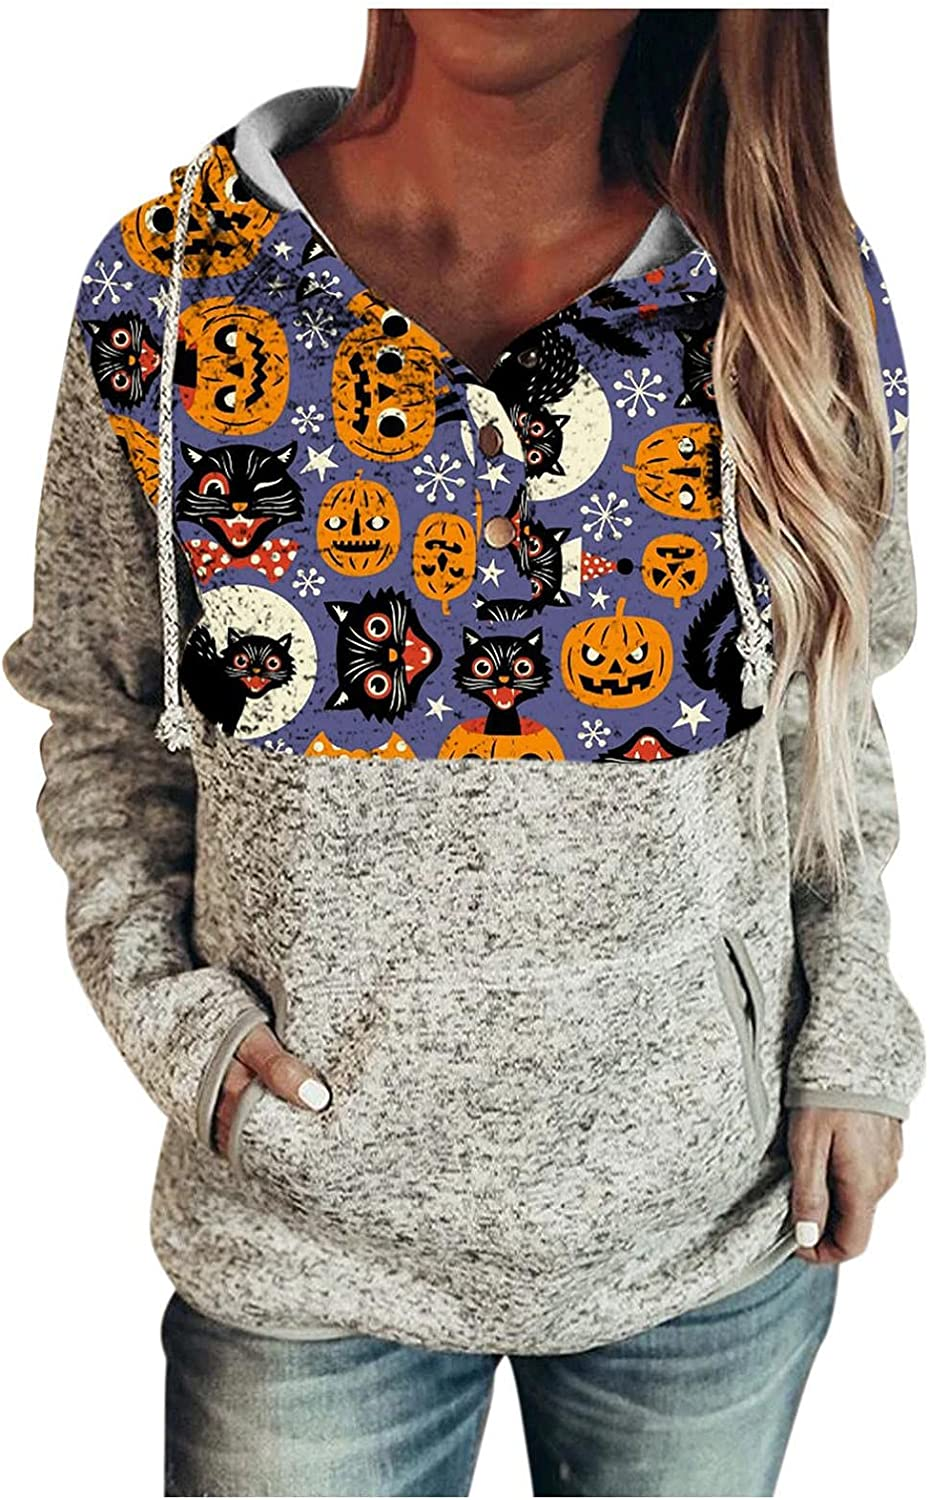 felwors Hoodies for Women, Womens Pullover Button Down Drawstring Sweatshirts with Pockets Casual Long Sleeve Hoodies